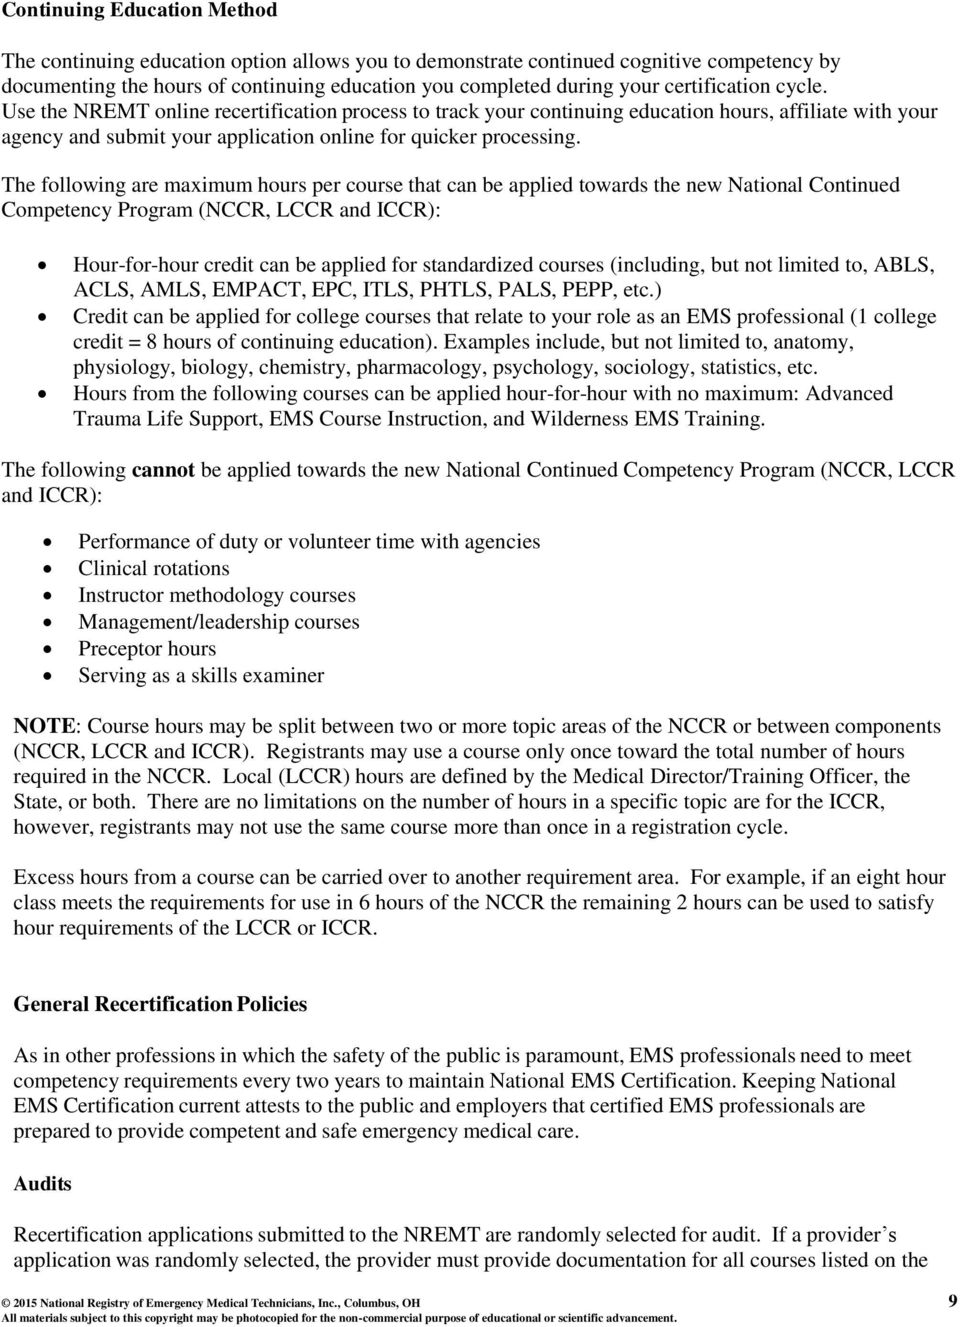 National Continued Competency Program Training Officer Guide Pdf